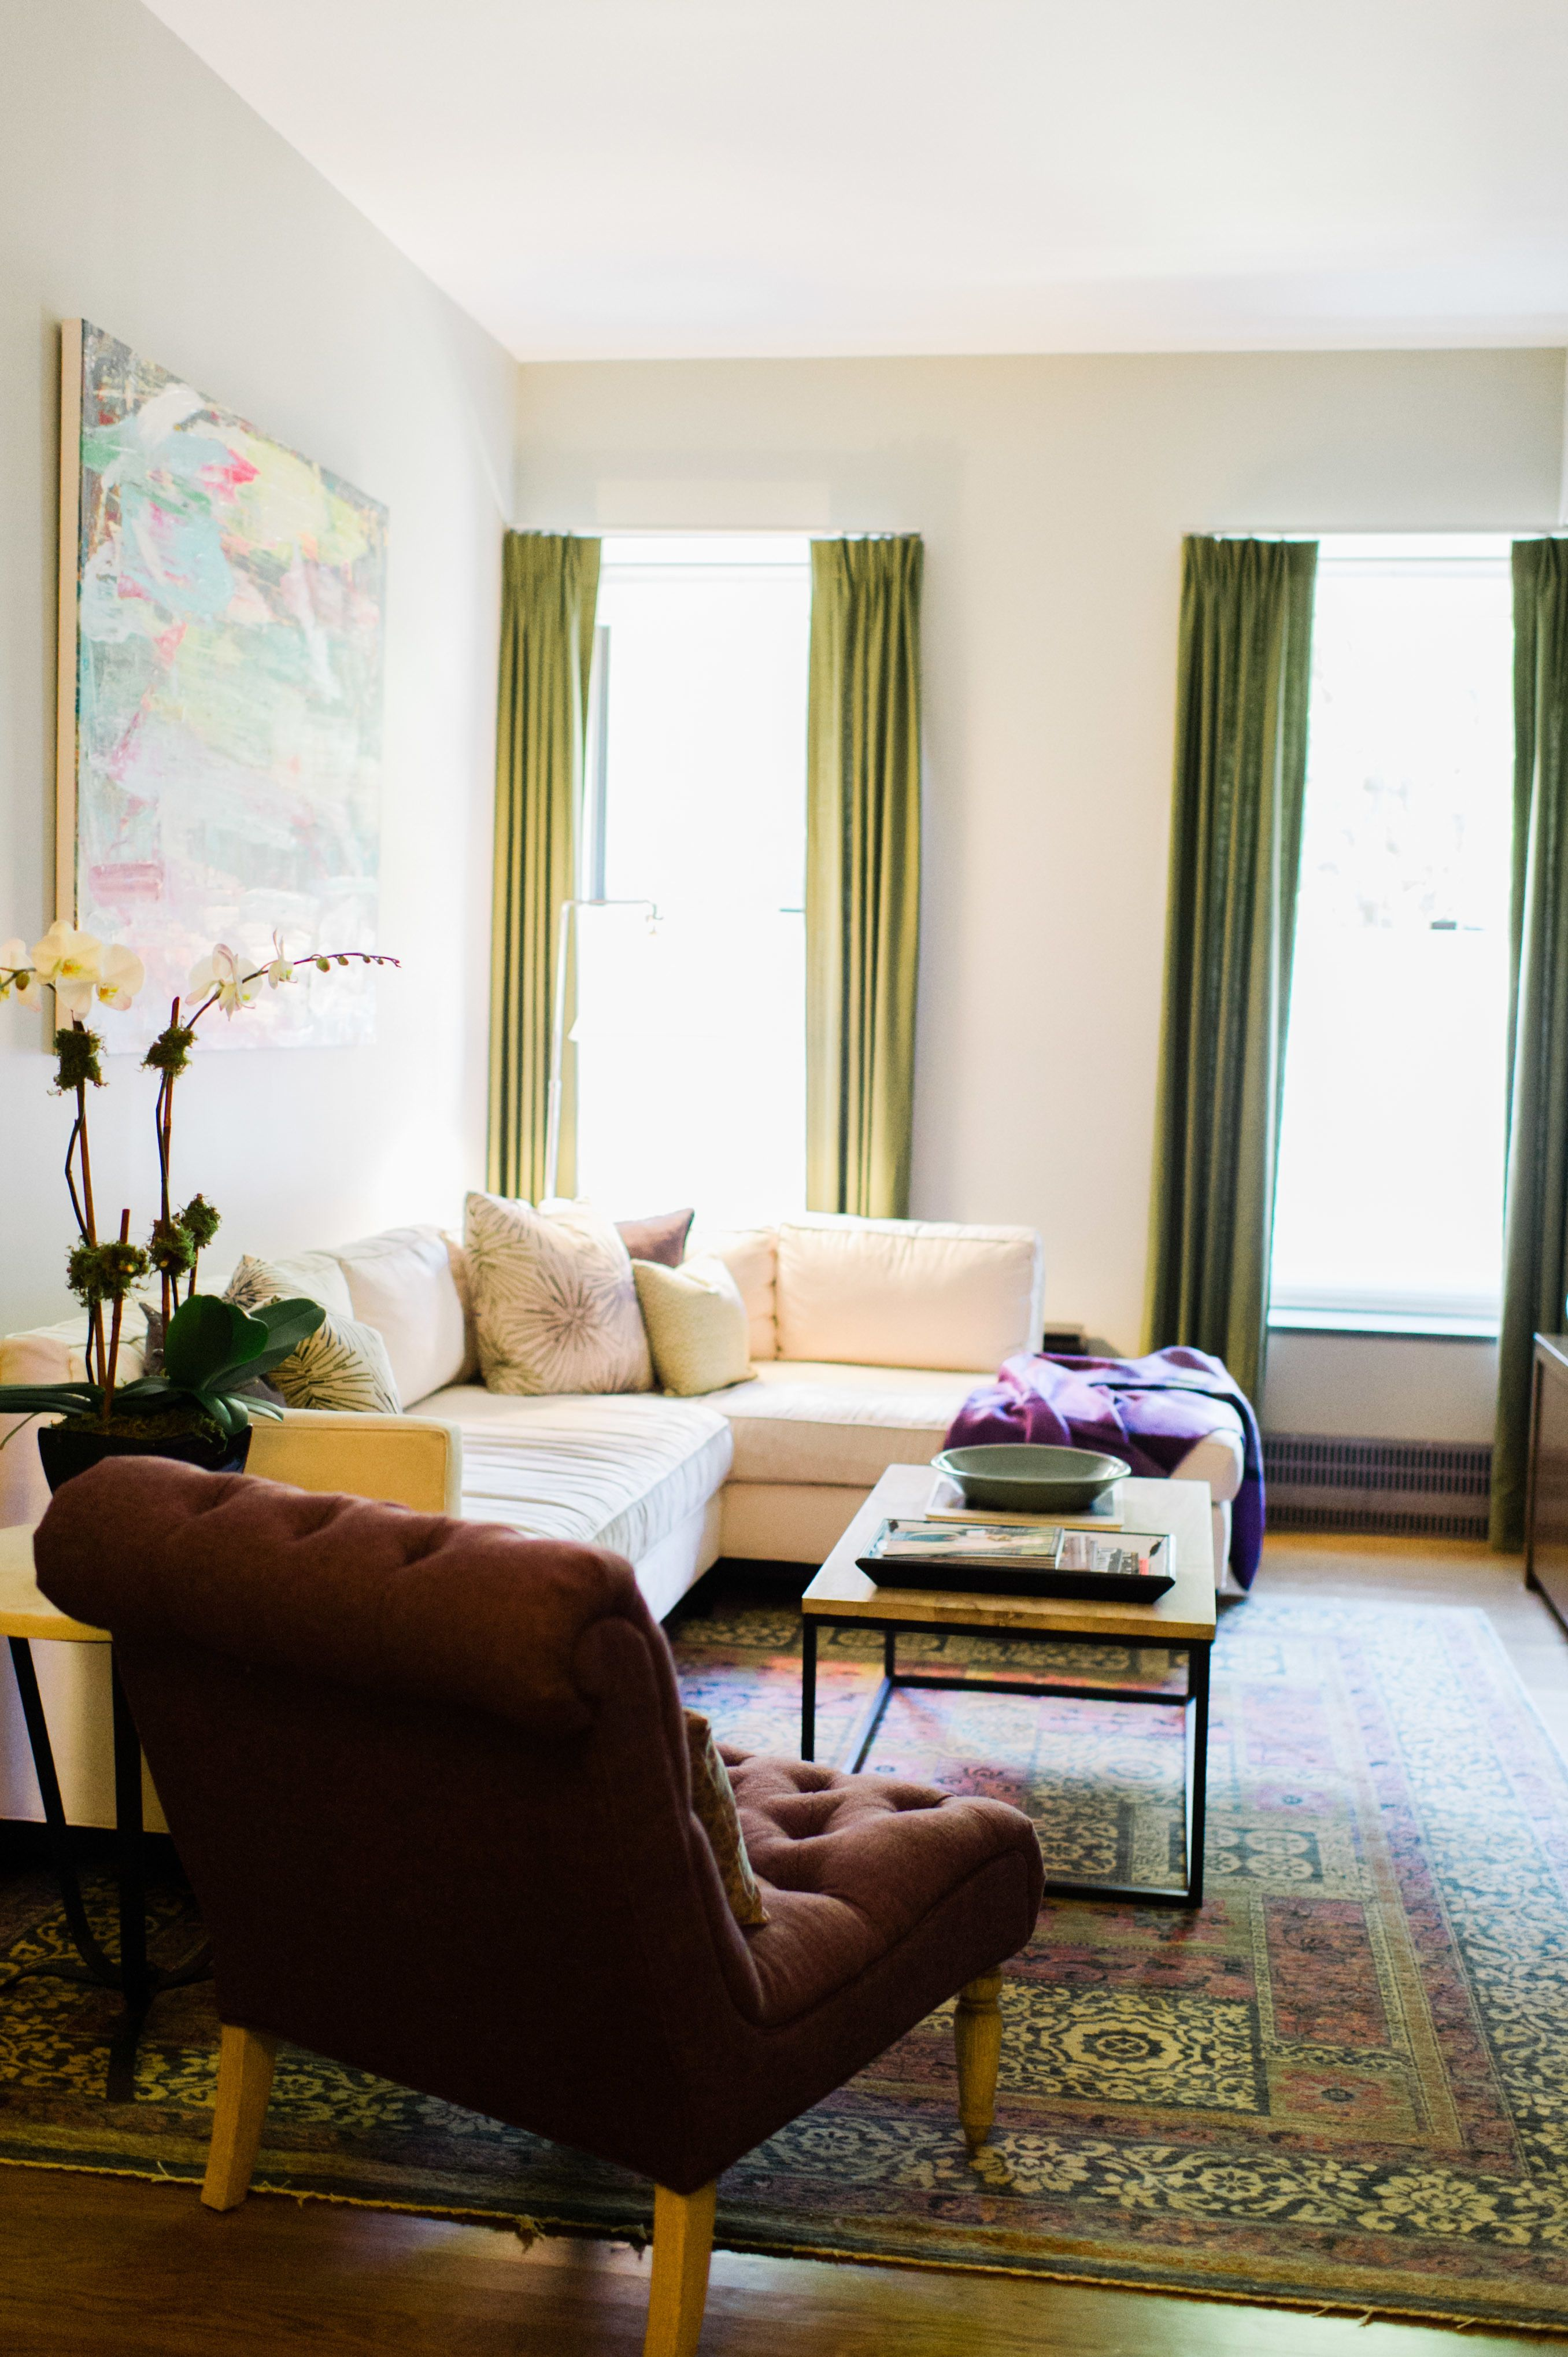 New York Loft Tour | Lofts, Green accent chair and Living rooms